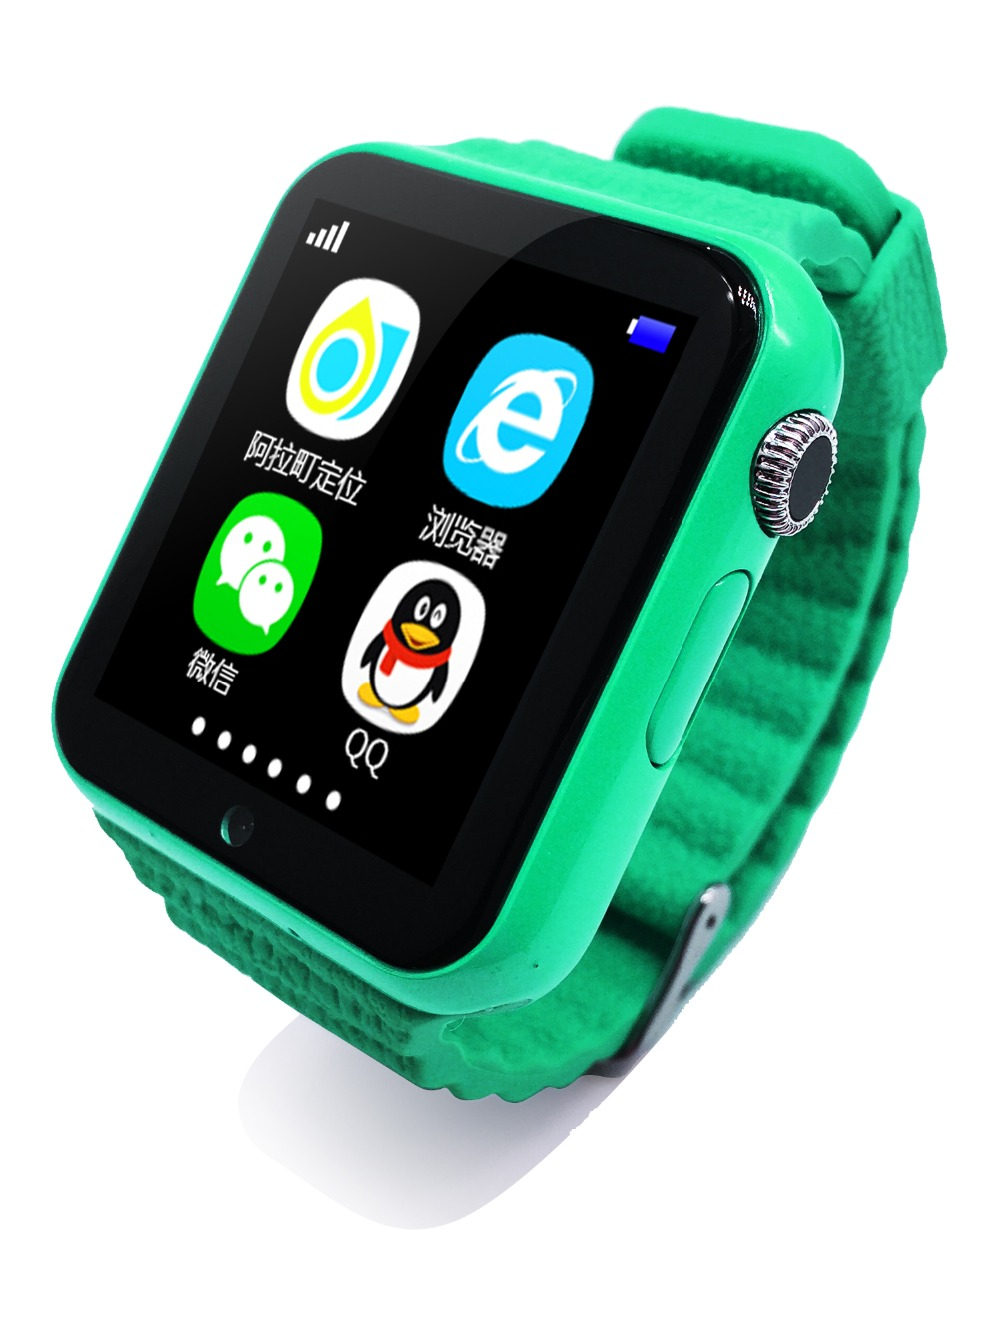 GPS smart watch kids watch V7k with camera/facebook SOS Call Location DevicerTracker for Kid Safe Anti-Lost Monitor PK Q80 Q90 smartch gps smart watch v7k kid waterproof smart baby watch with camera sos call location device tracker anti lost monitor